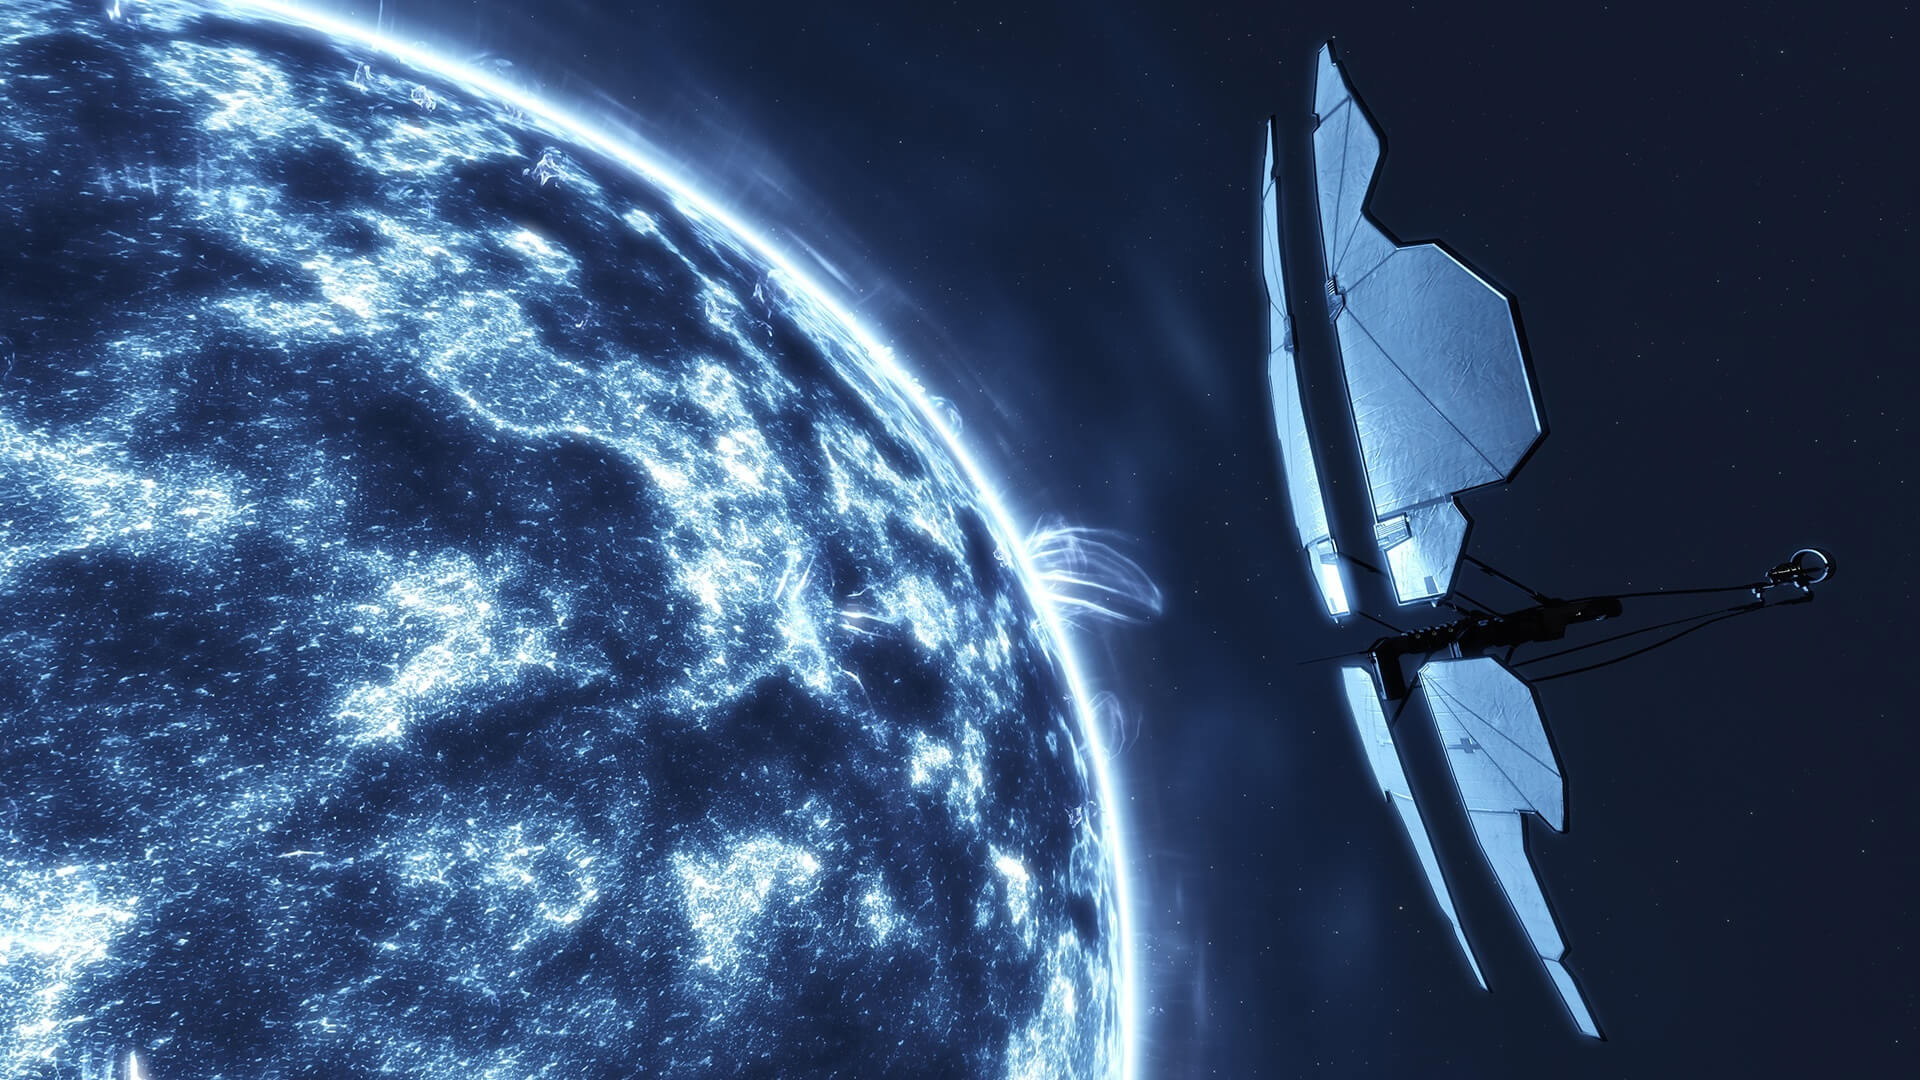 Eve Online arrives in the Epic Games Store with a revamped new player experience